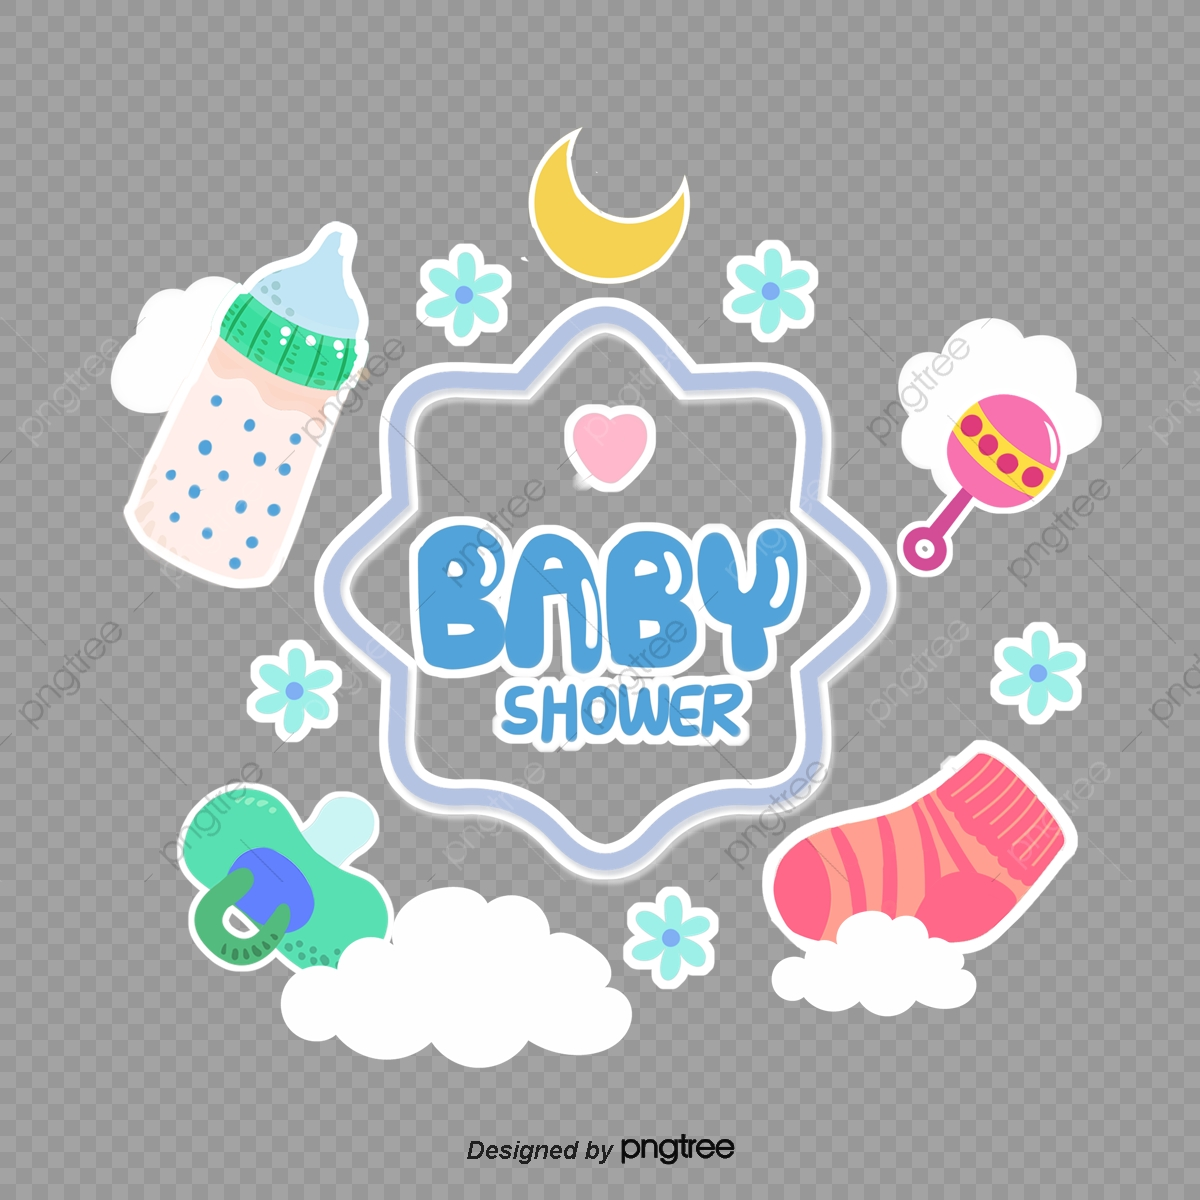 Baby Shower Decorative Border Baby Baby Shower Cartoon Png Transparent Clipart Image And Psd File For Free Download